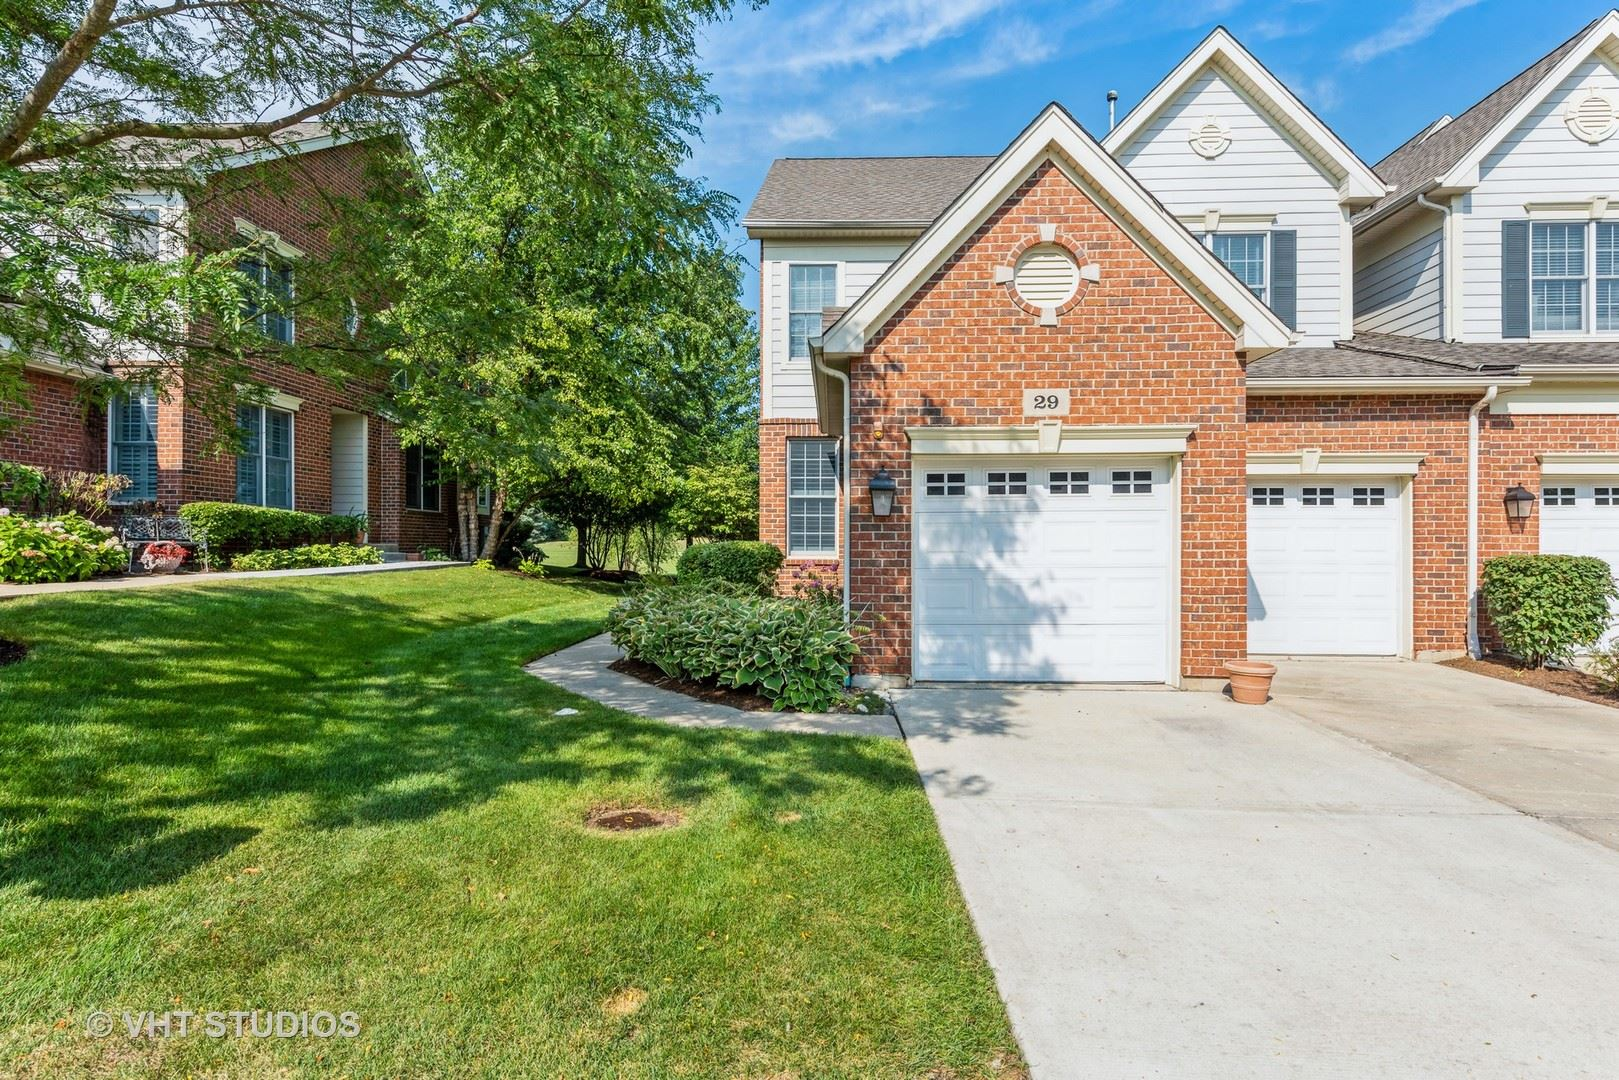 29 Red Tail Drive, Hawthorn Woods, IL 60047 - #: 11205247